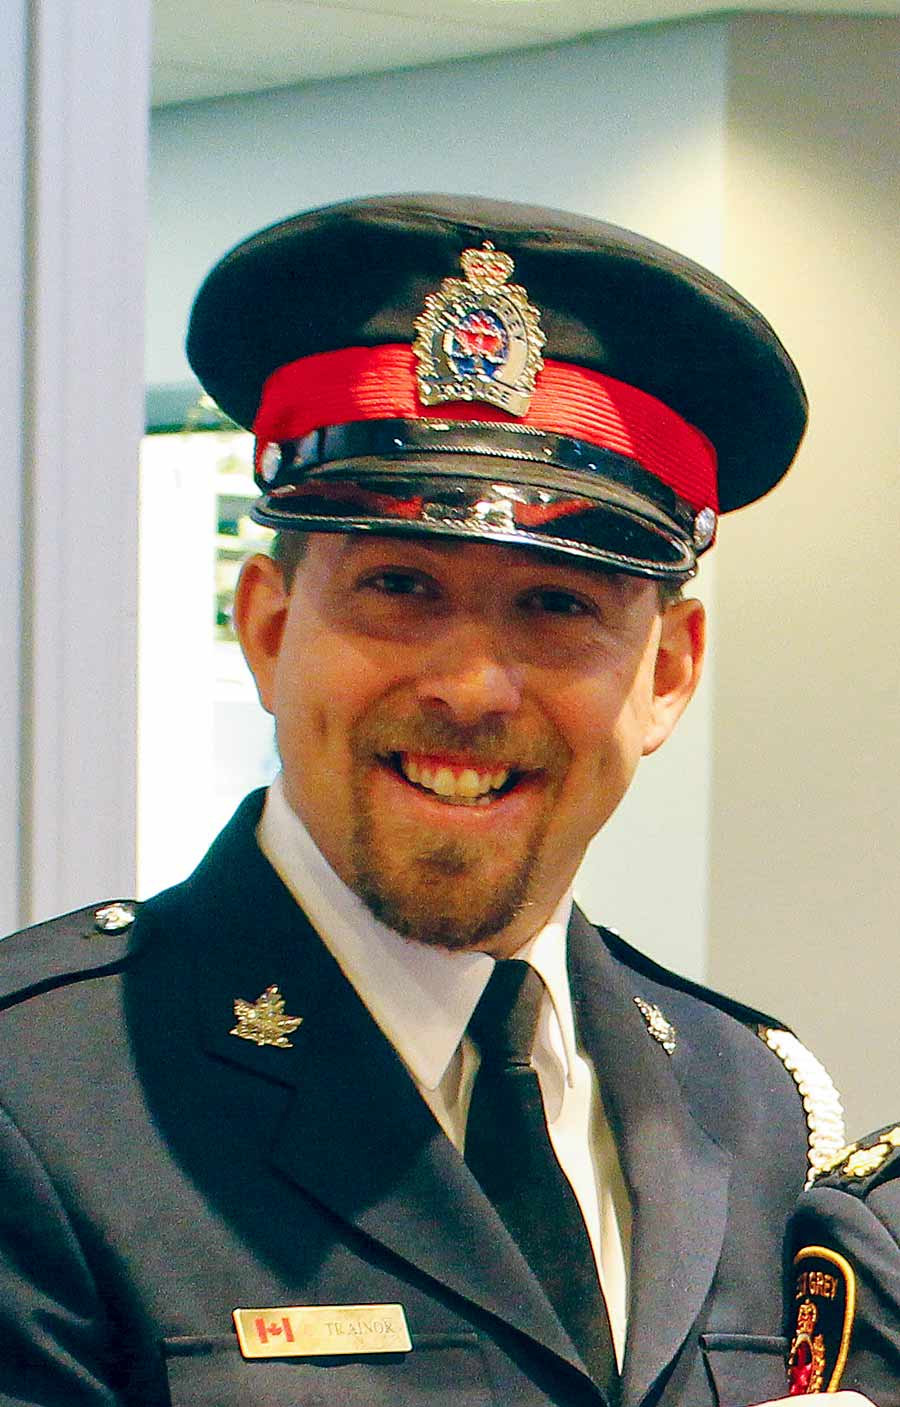 West Grey Police mourning the loss of one of their own